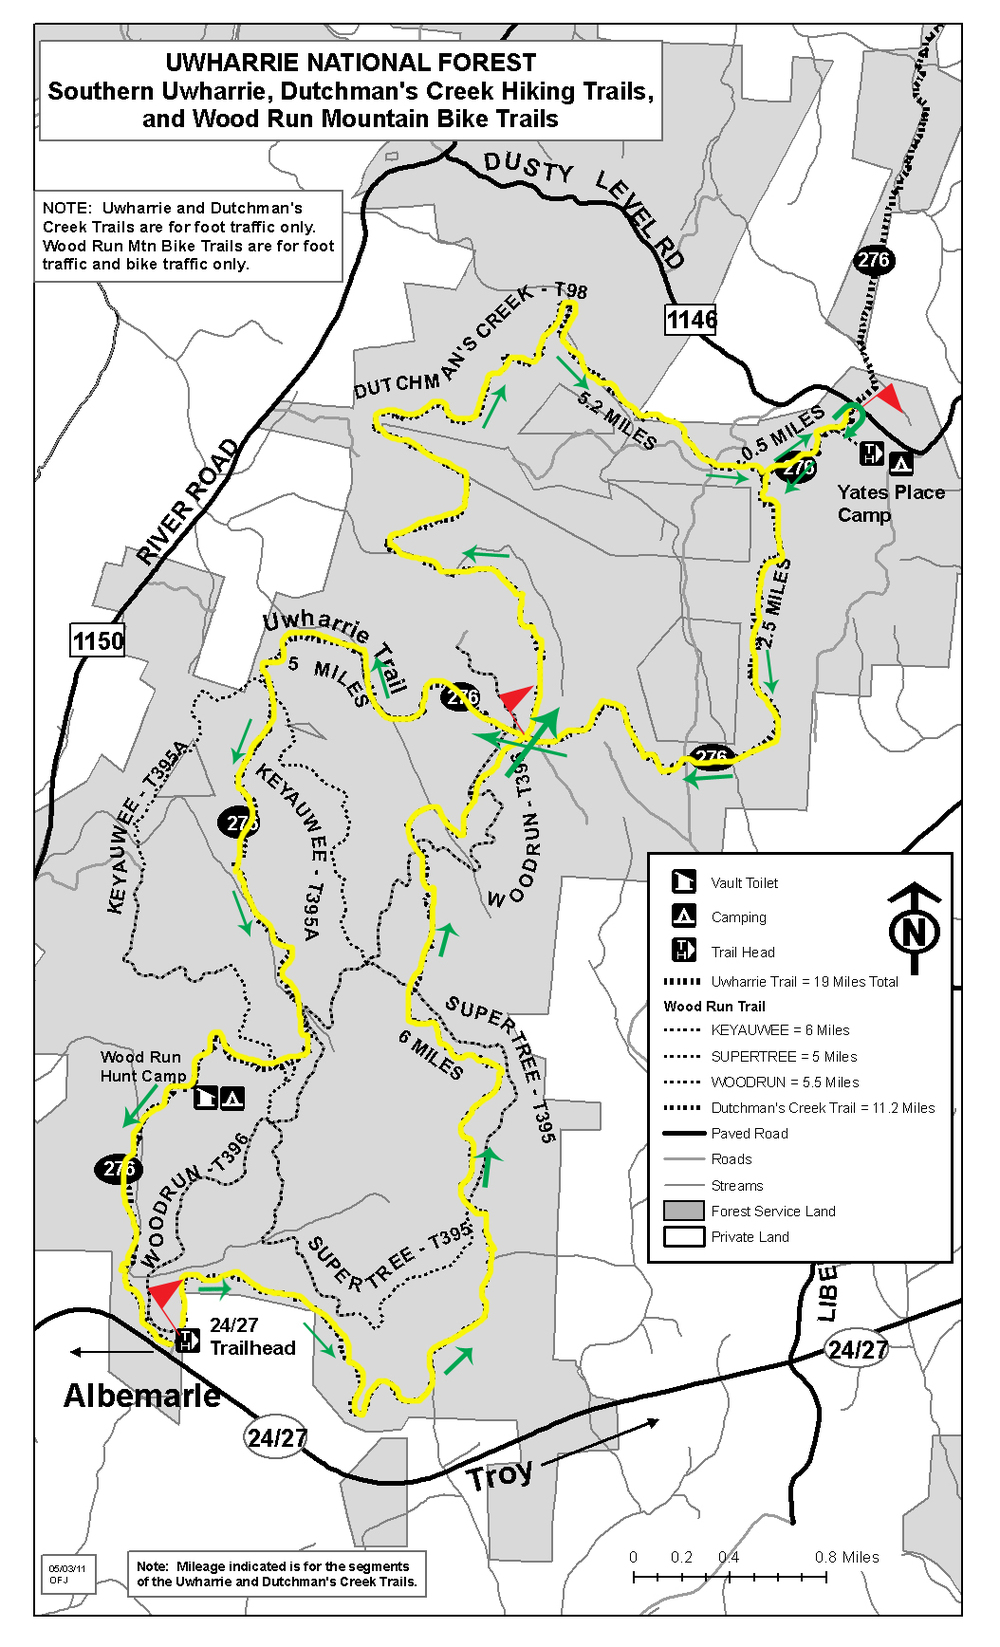 Uwharrie 100 Mile and 100K Trail Run Course Map.  Aid Stations are marked with red flags.  The race begins at the 24/27 Trailhead at the southern portion of the course.